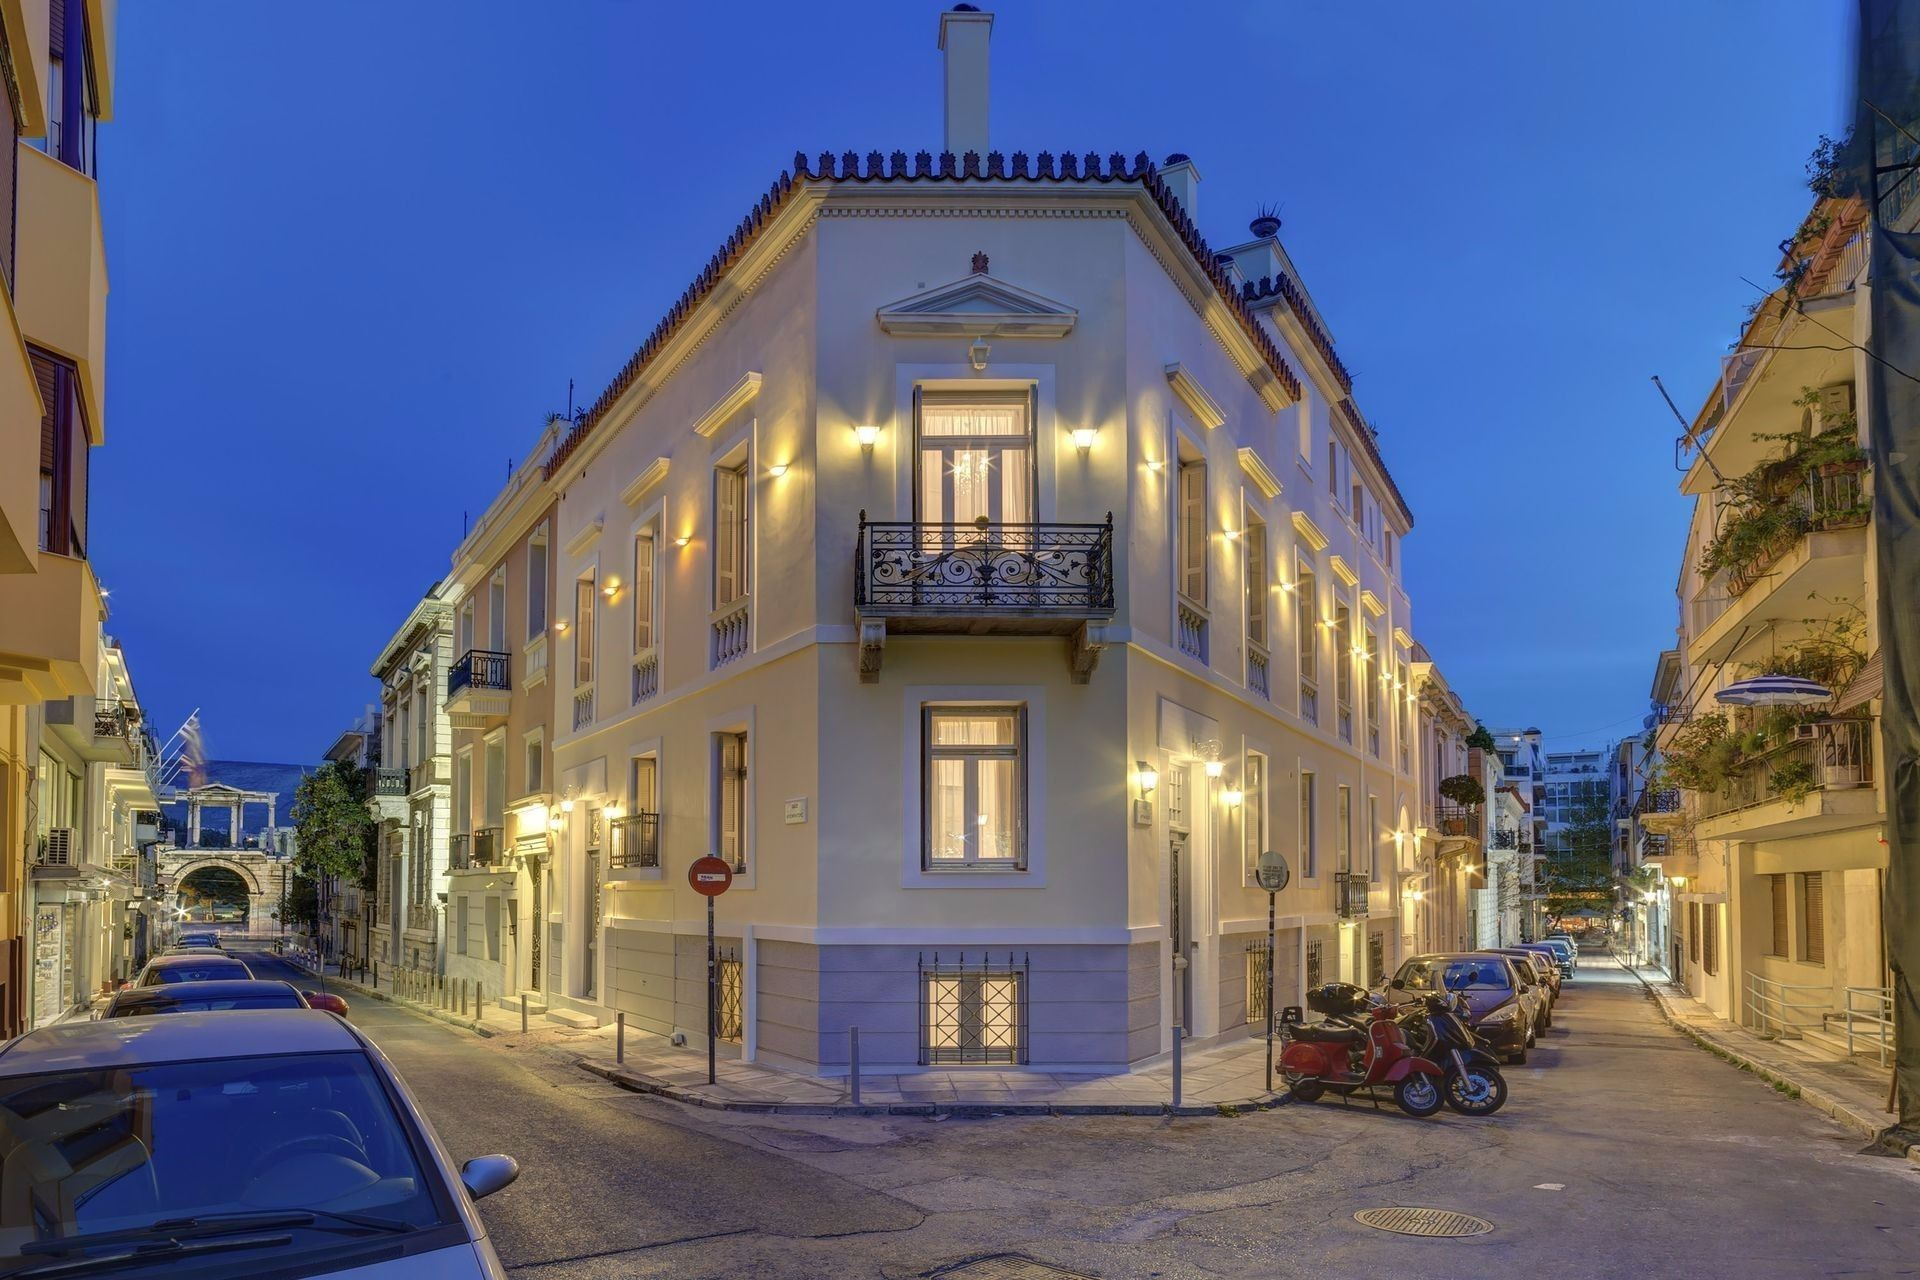 Home & Poetry Athens - Αθήνα ✦ -26% ✦ 2 Ημέρες